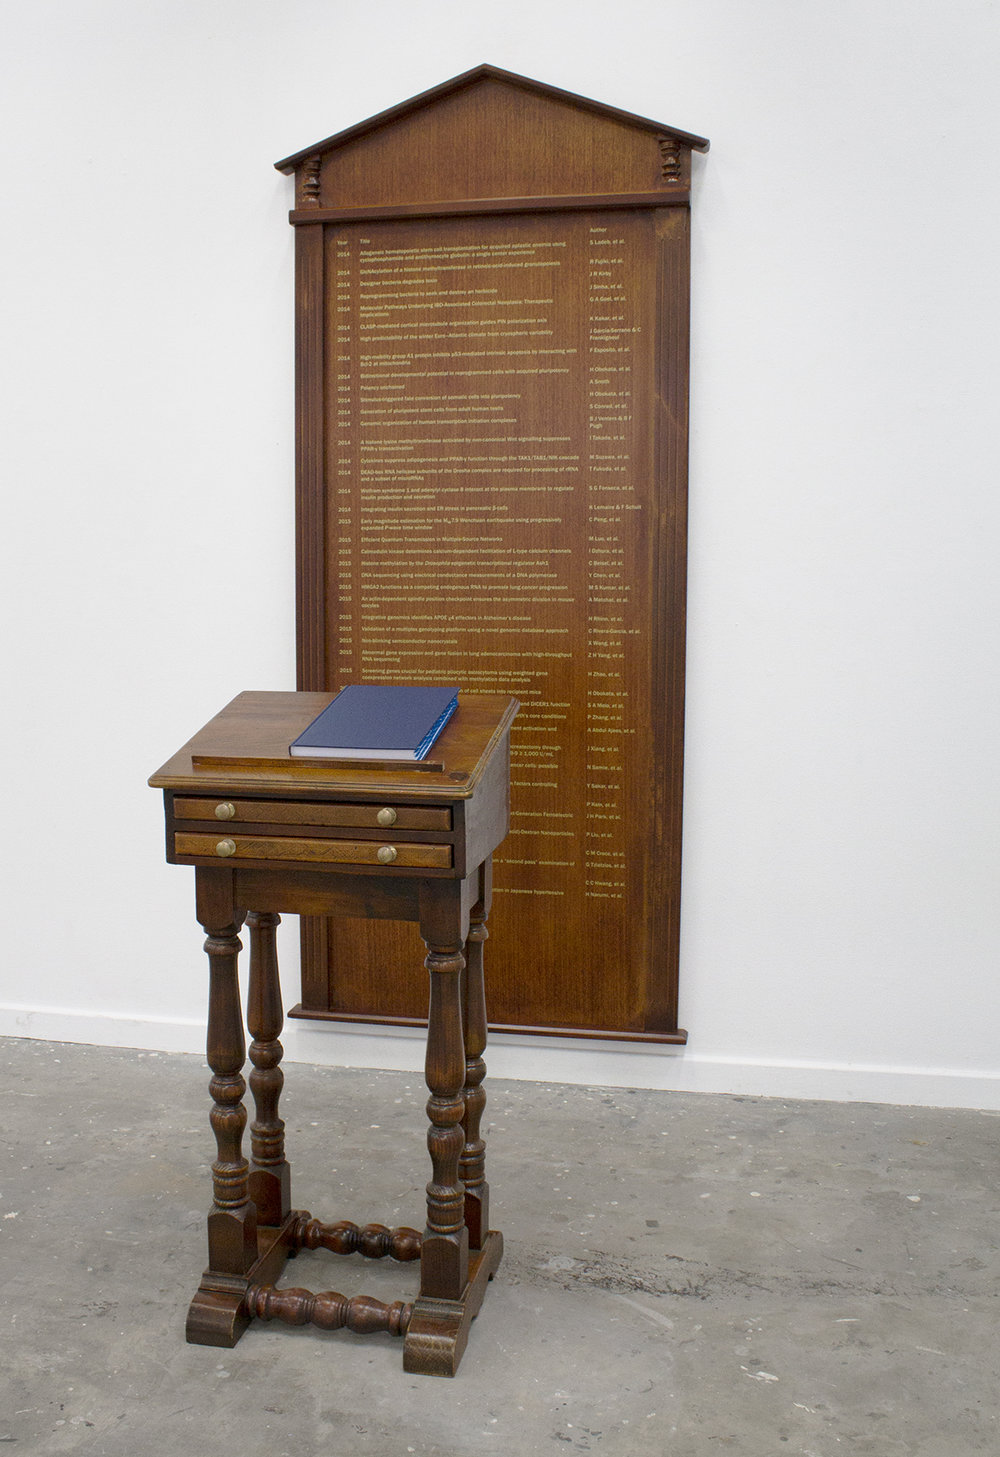 Ash Tower, Studies of Nature, 2017, honour board, lectern, bound book, 110 x 250 x 175 cm, Image courtesy of the artist